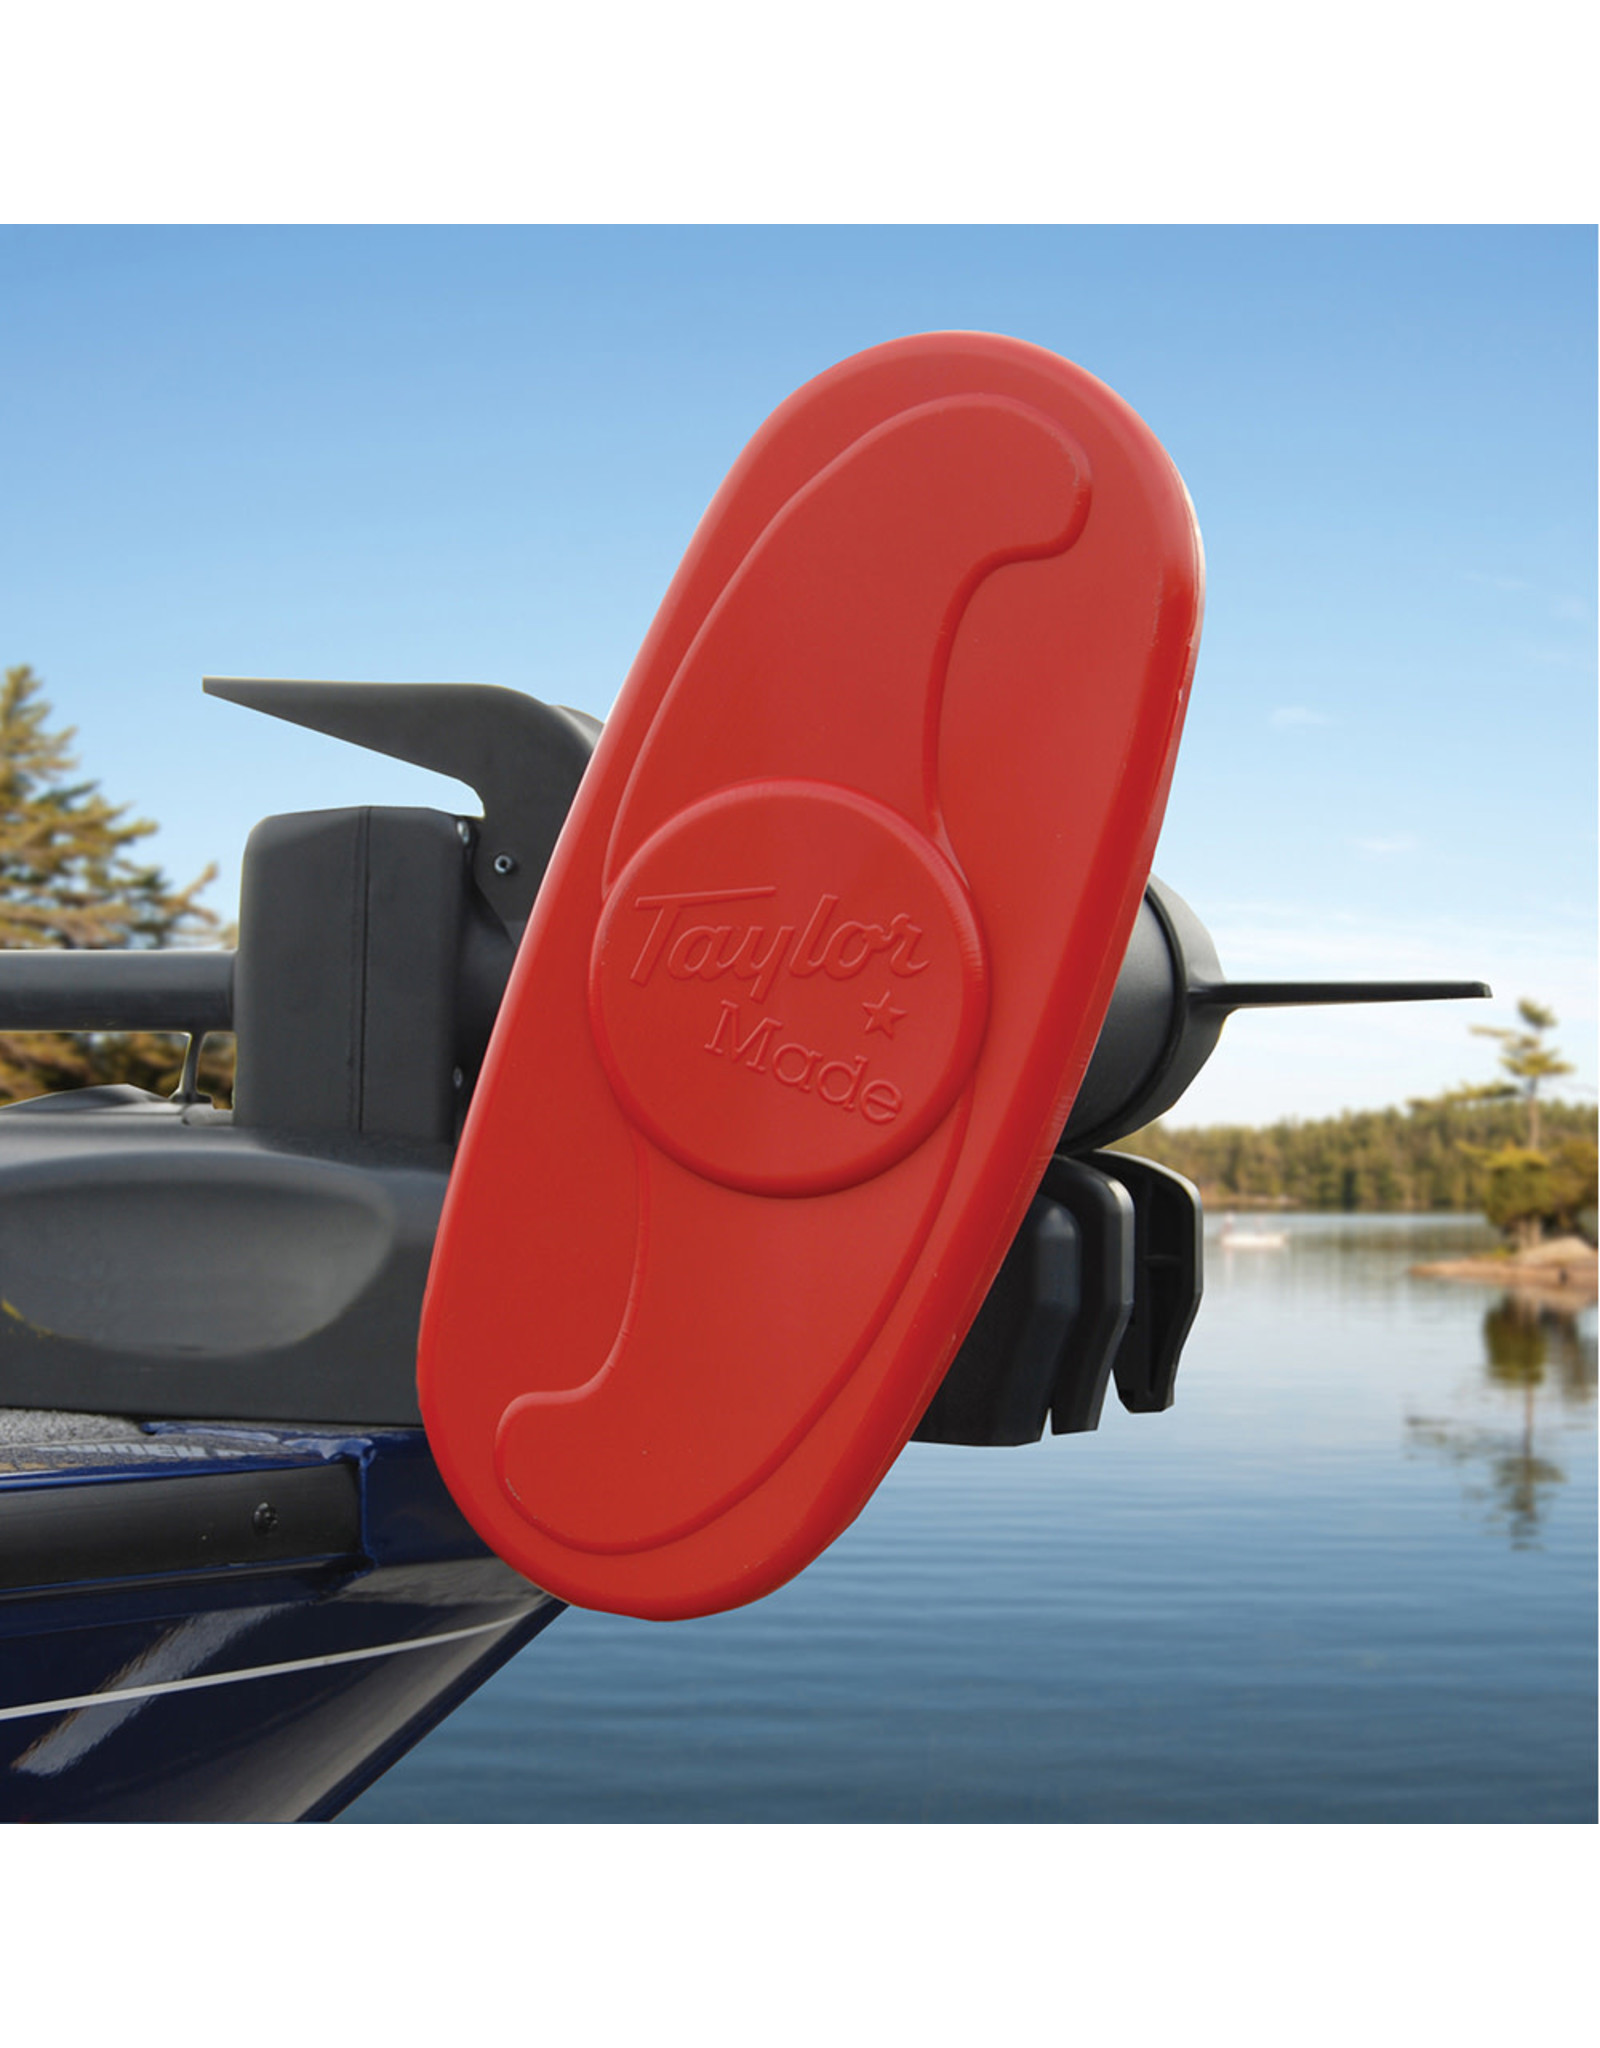 """Taylor Made Trolling Motor Propeller Cover- 2-Blade Cover - 12""""- Red"""